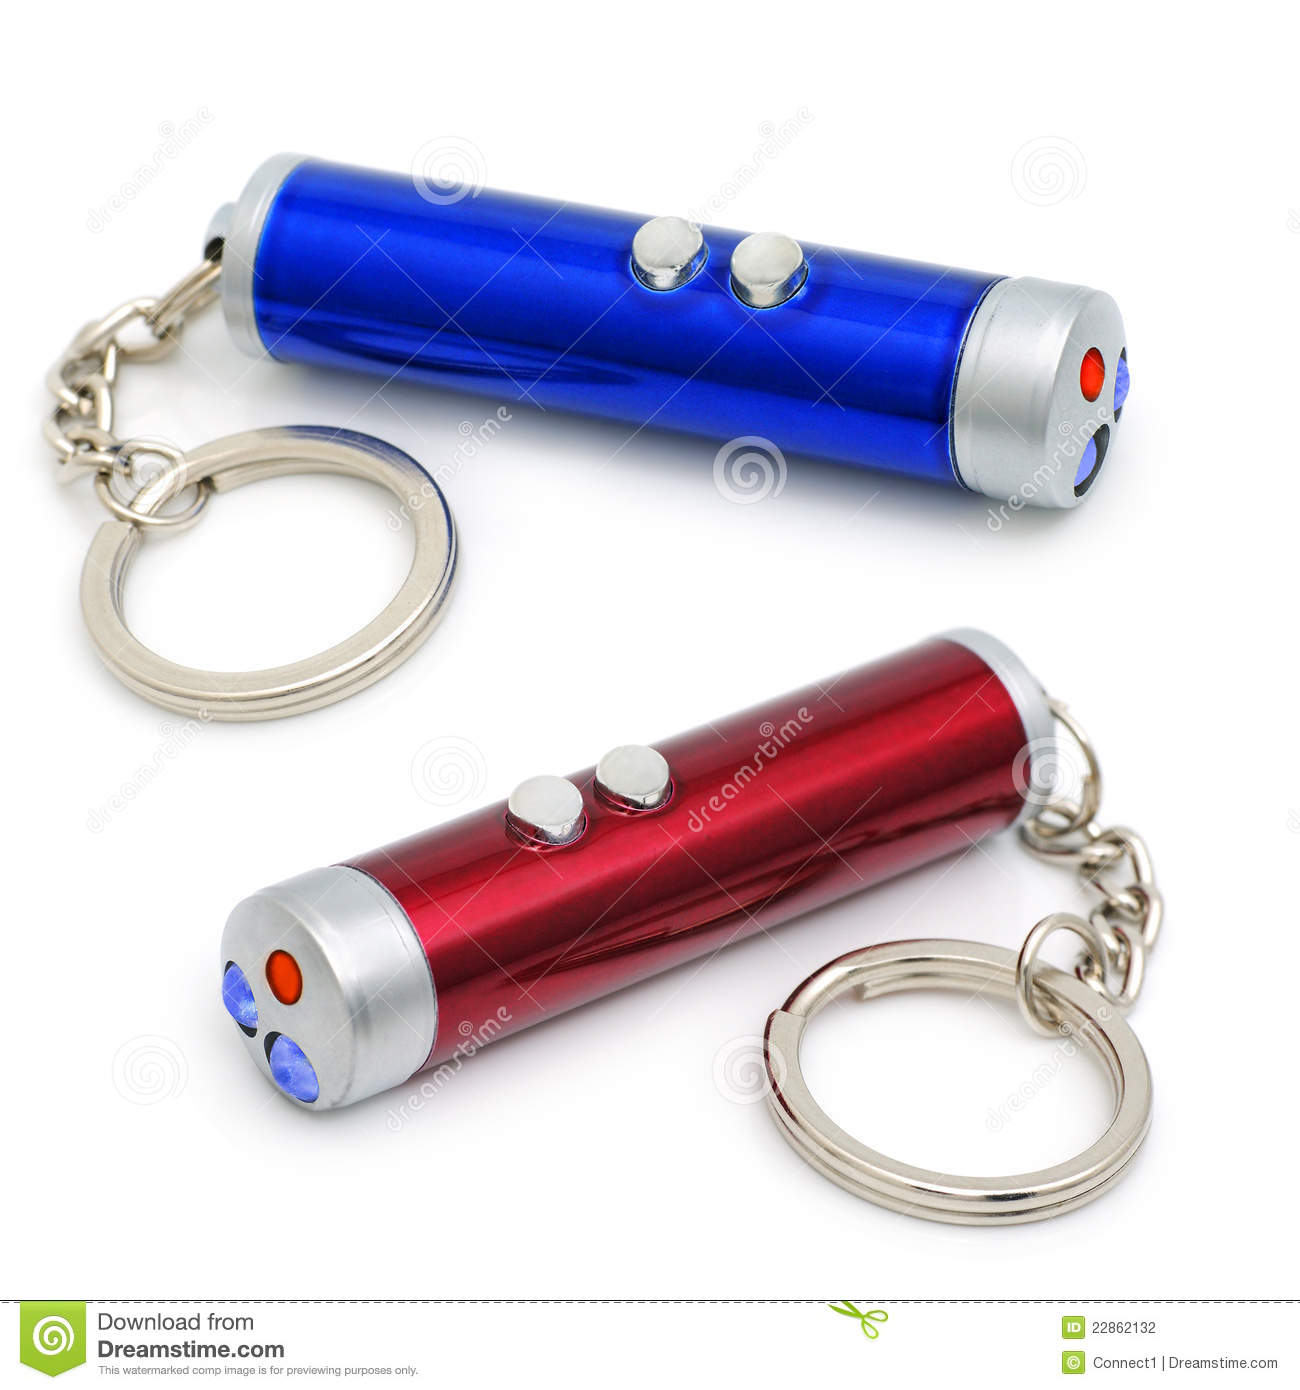 LED Electric Torch.